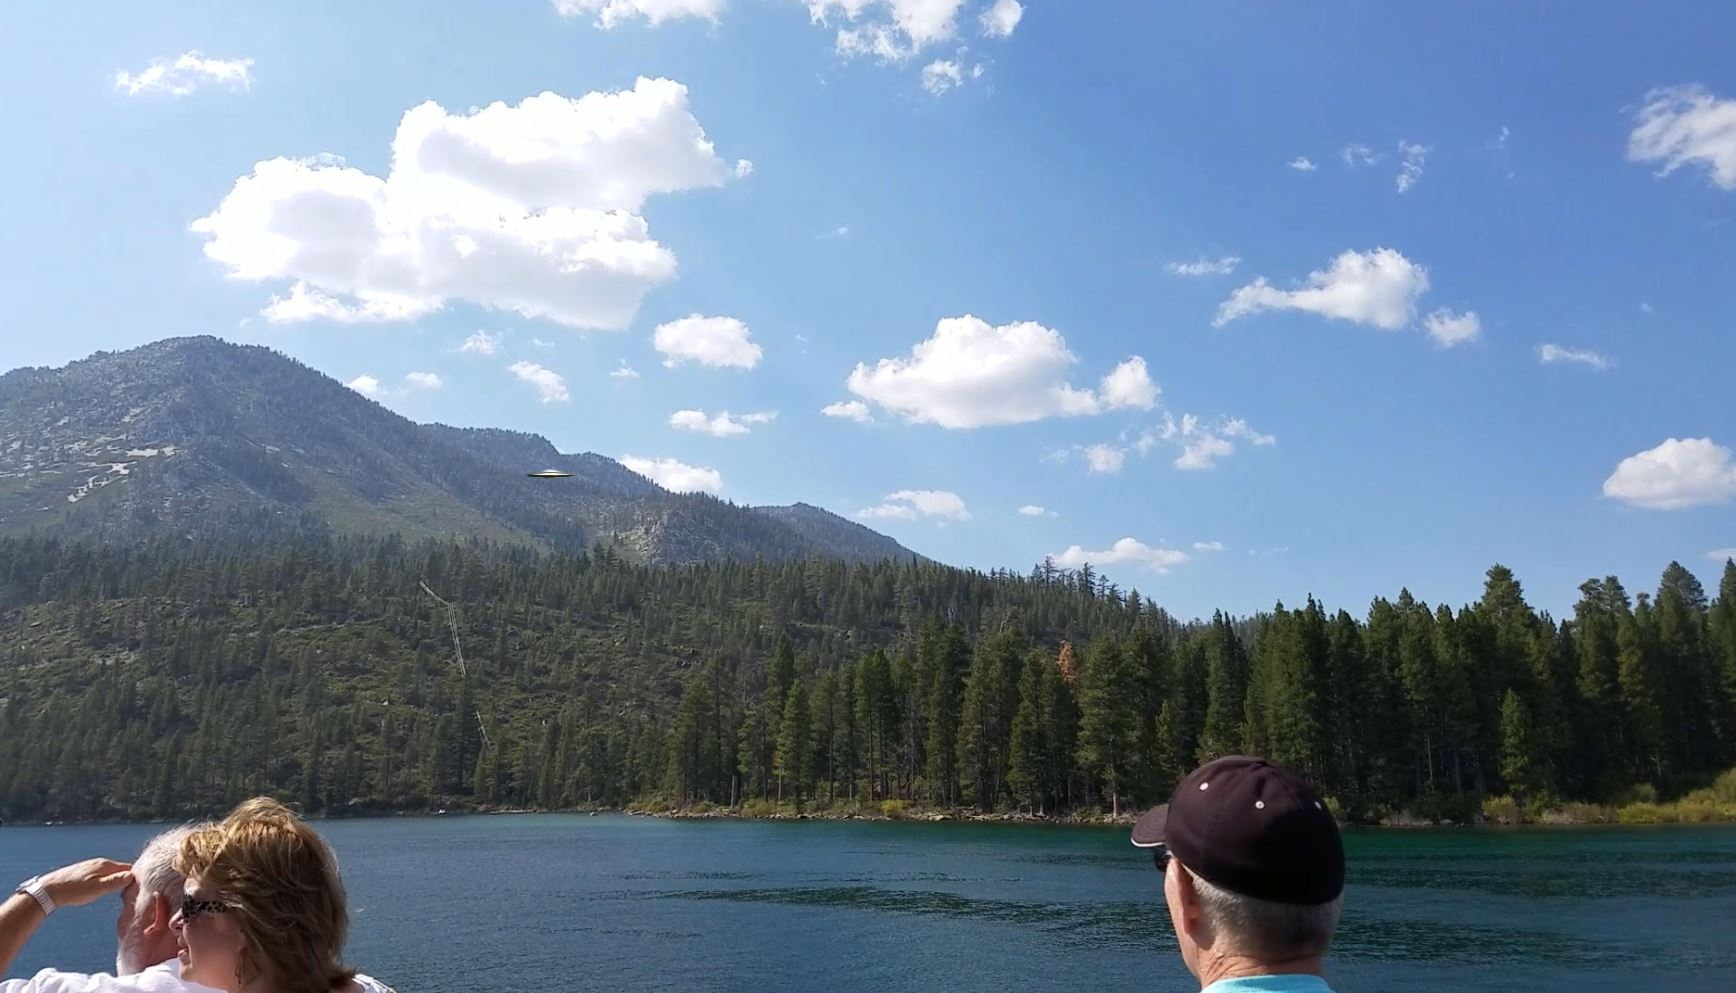 UFO over Lake Tahoe, Nevada